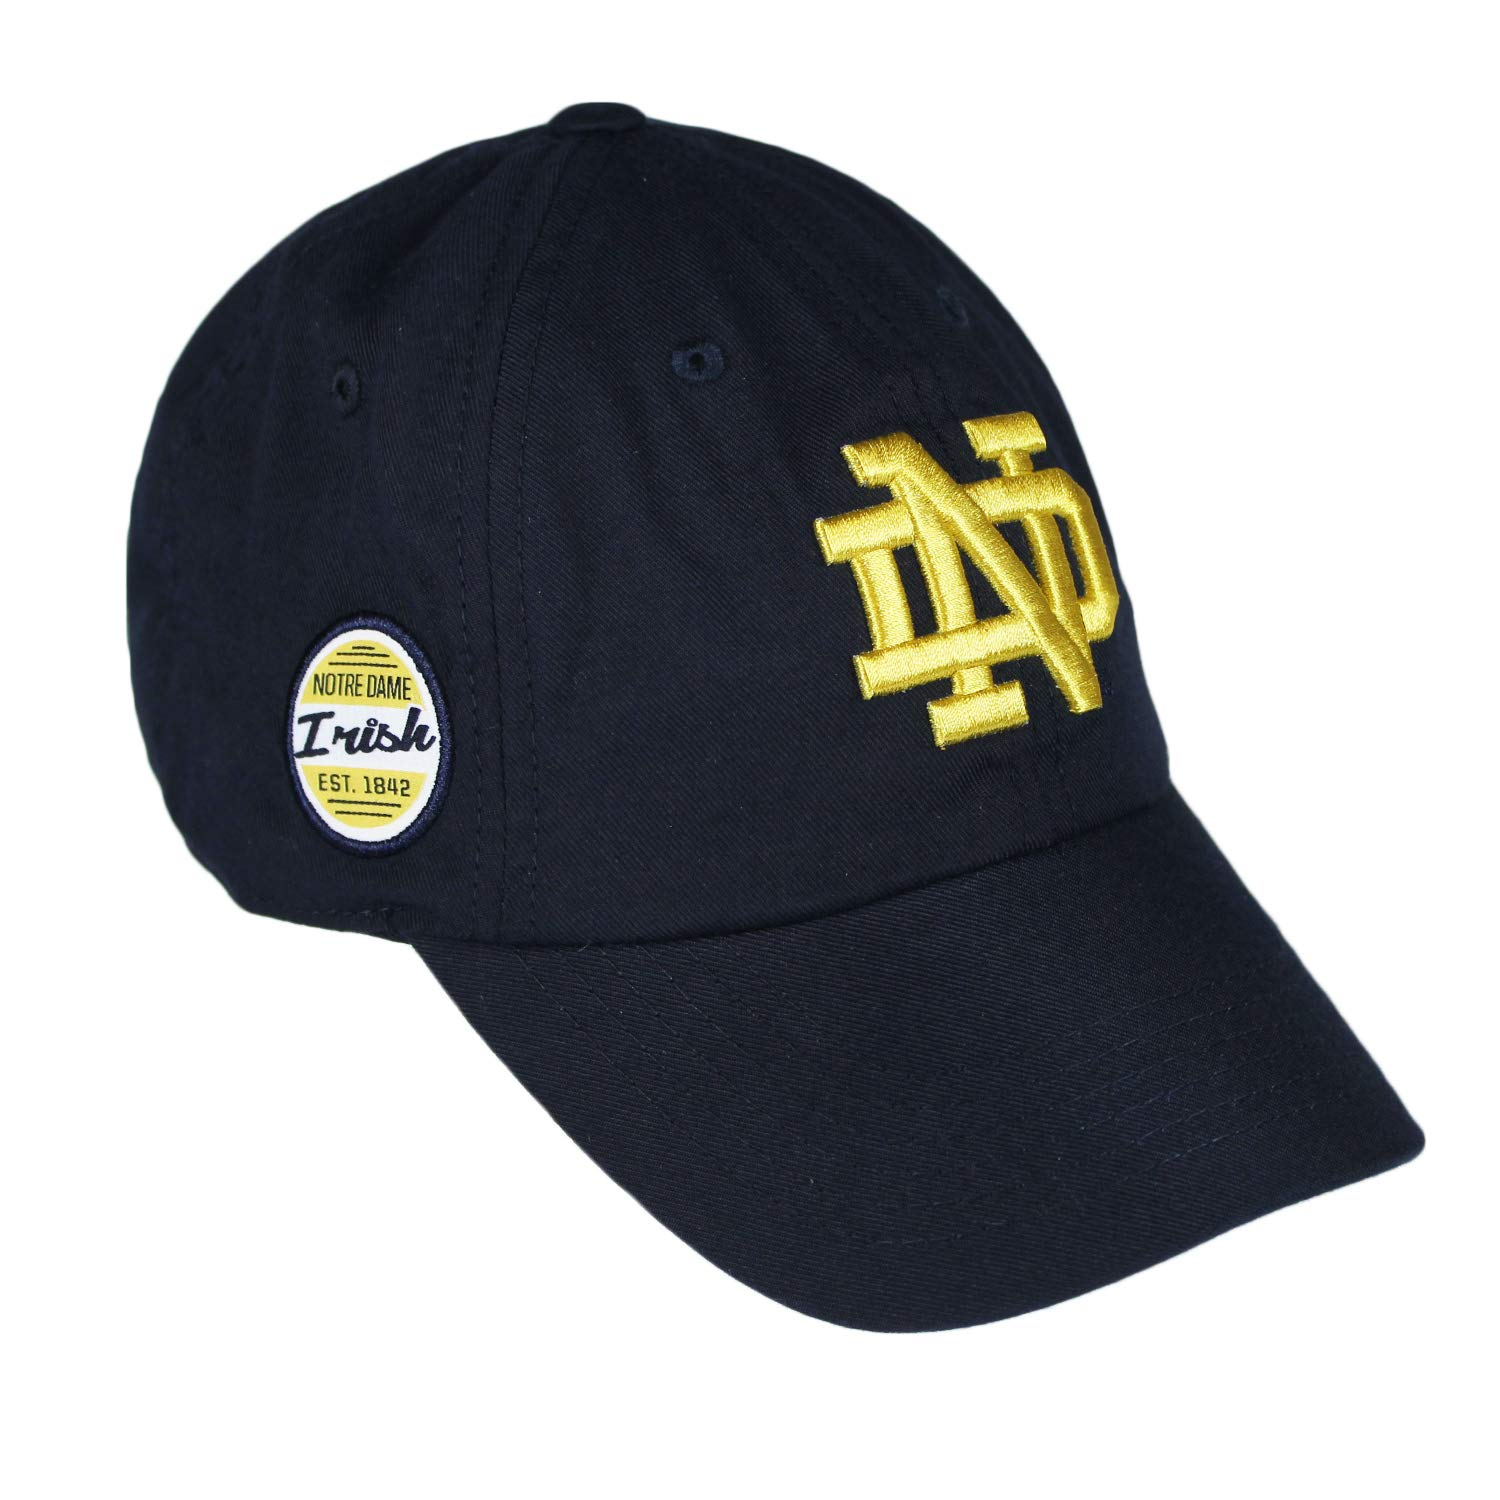 aa88f54b6343 Amazon.com : Top of the World Notre Dame Fighting Irish Official NCAA  Adjustable Blue EST. 1842 Staple 4 Hat Cap 745541 : Sports & Outdoors